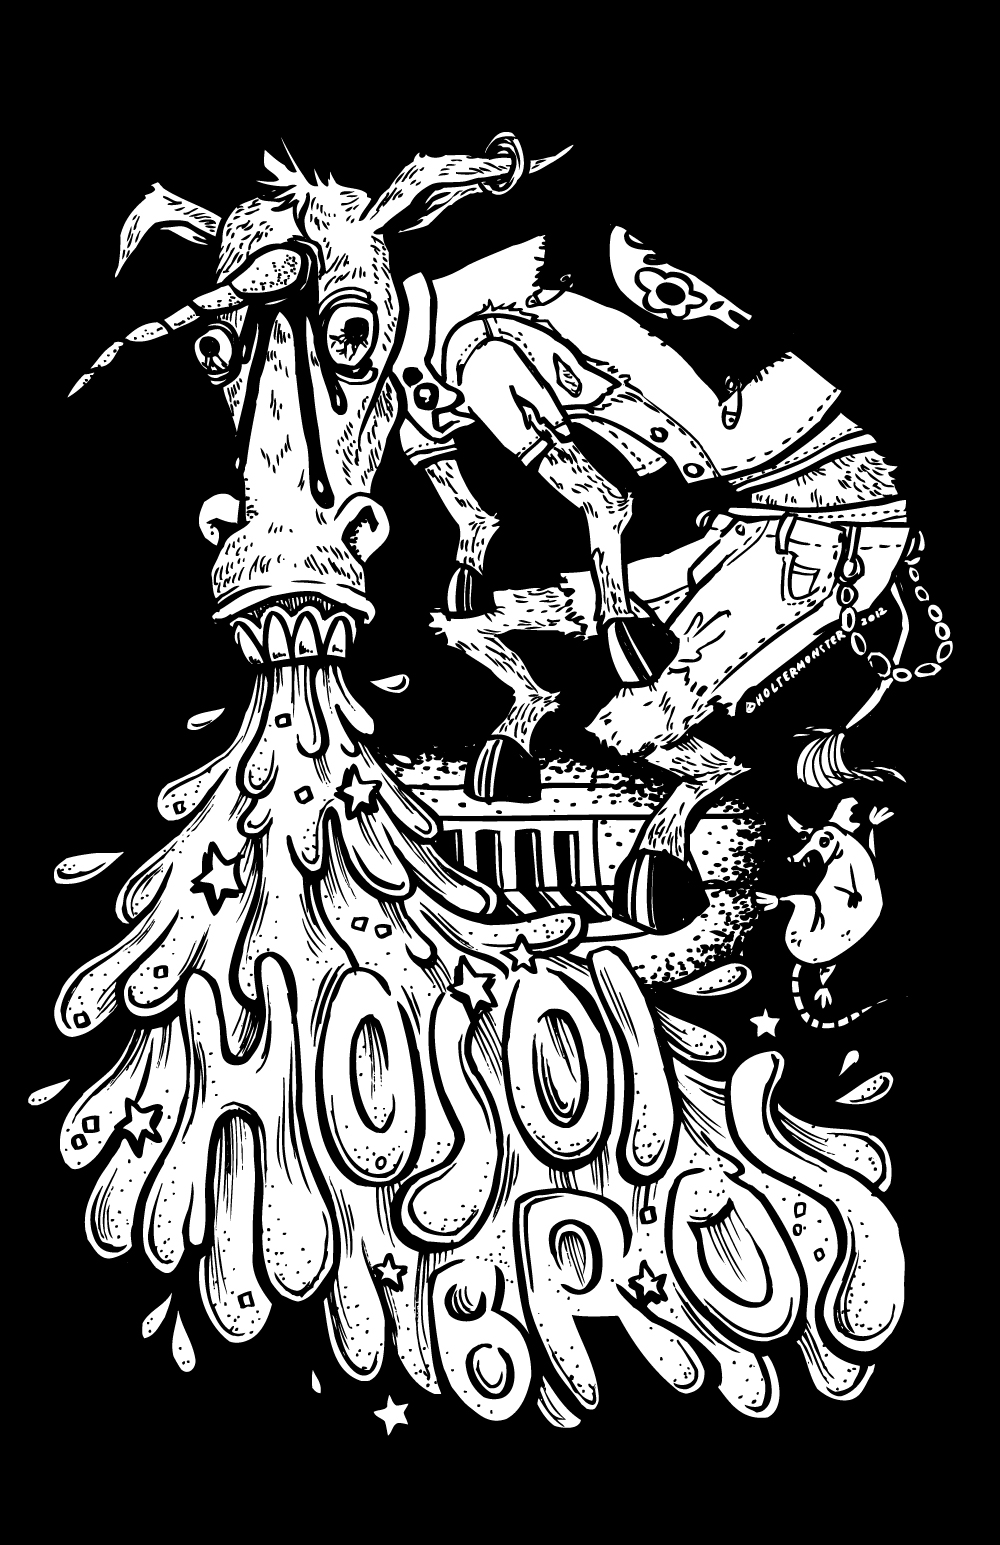 New DRUNK DONKEY shirt design for Hosoi Bros.—stupid music for smart people. Check em out!